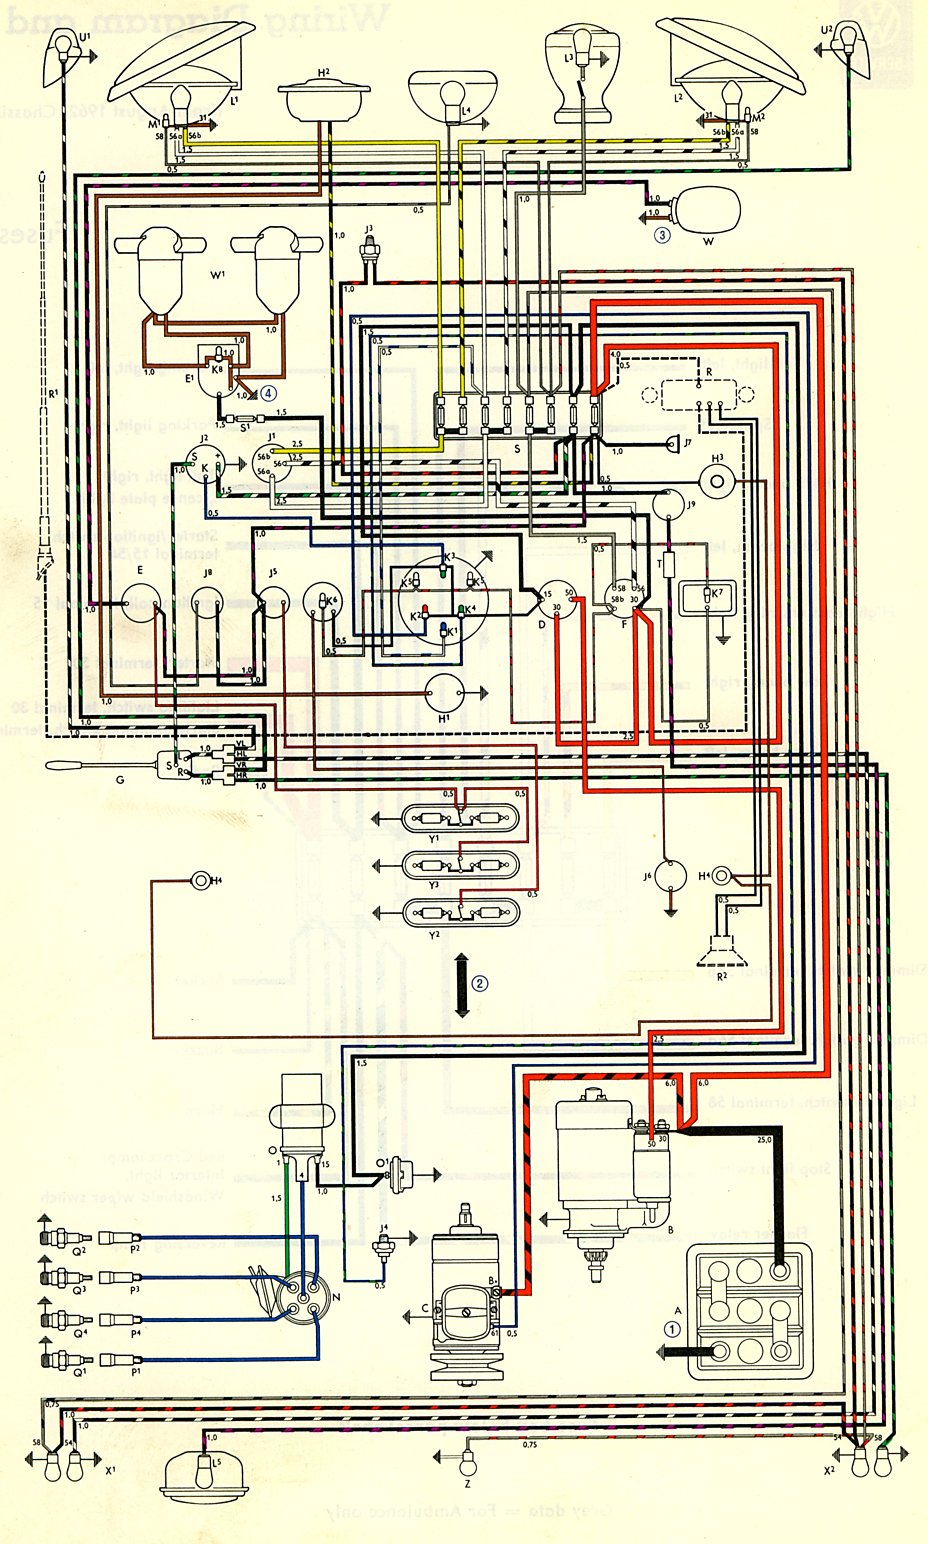 Chevy Nova Wiring Diagram Also Chevy Ignition Switch Wiring Diagram